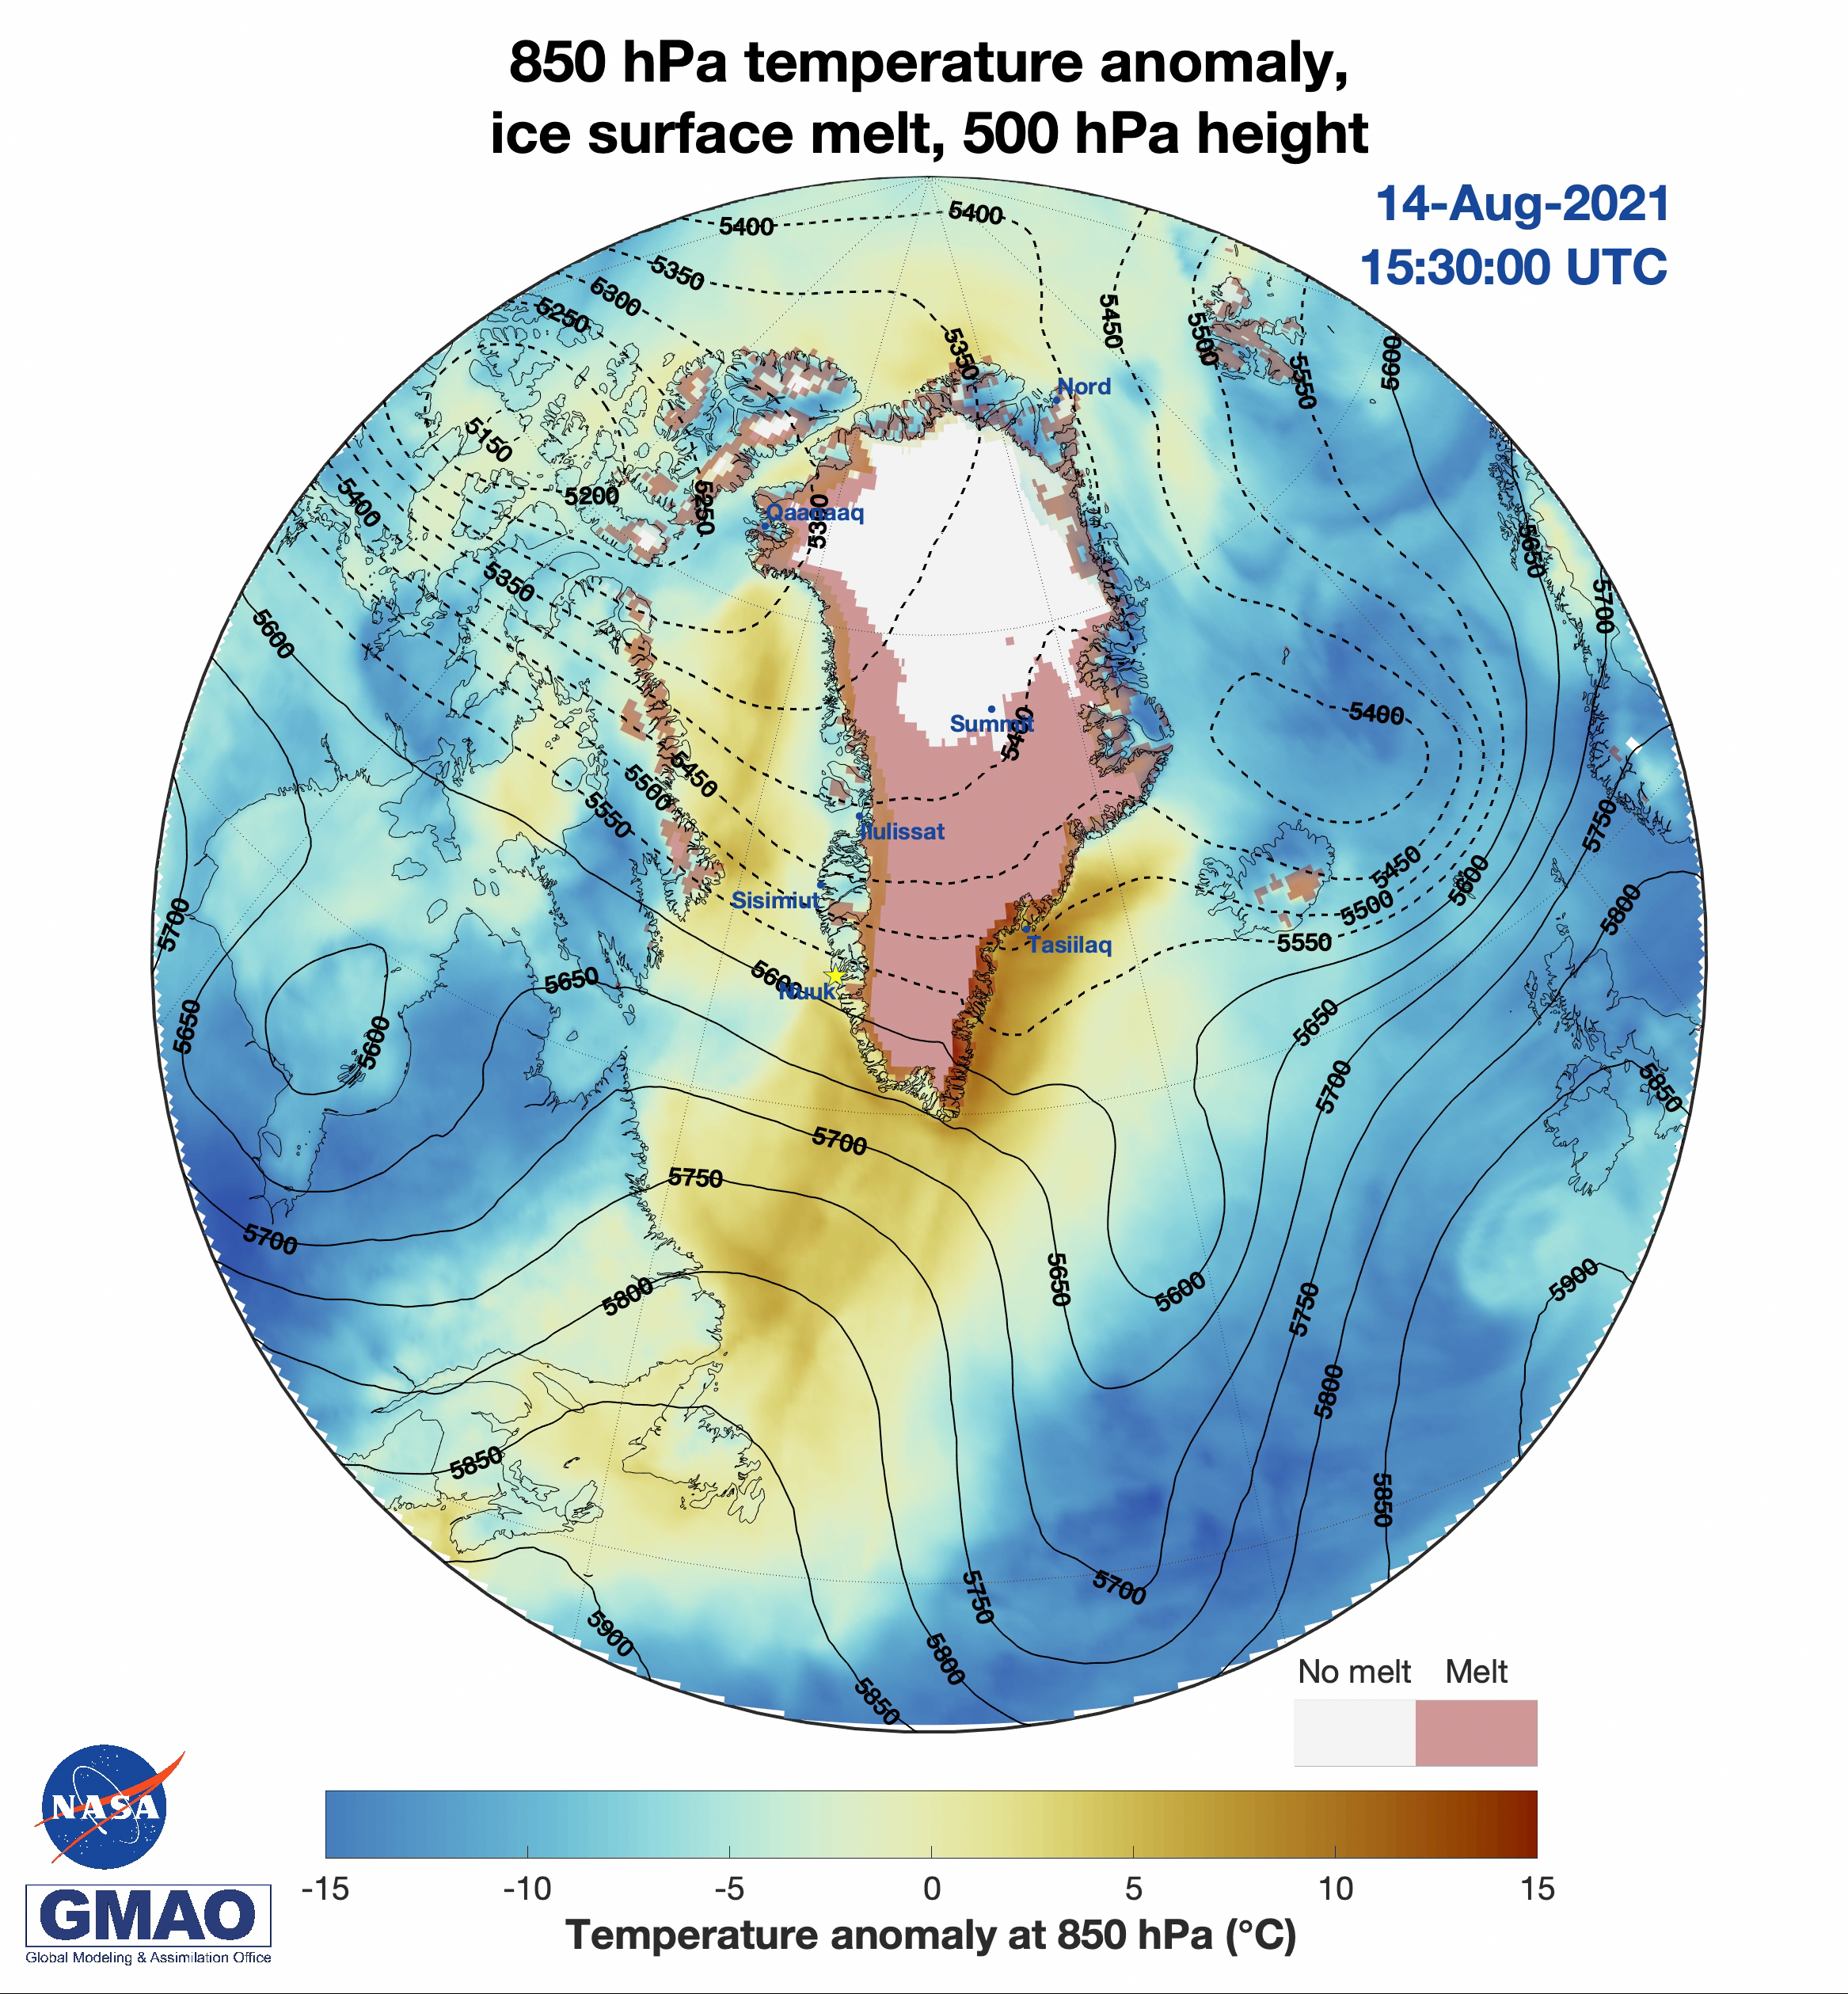 Visualization of air temperature anomaly, ice surface melt extent, and 500 mPa height during peak melt extent on Greenland